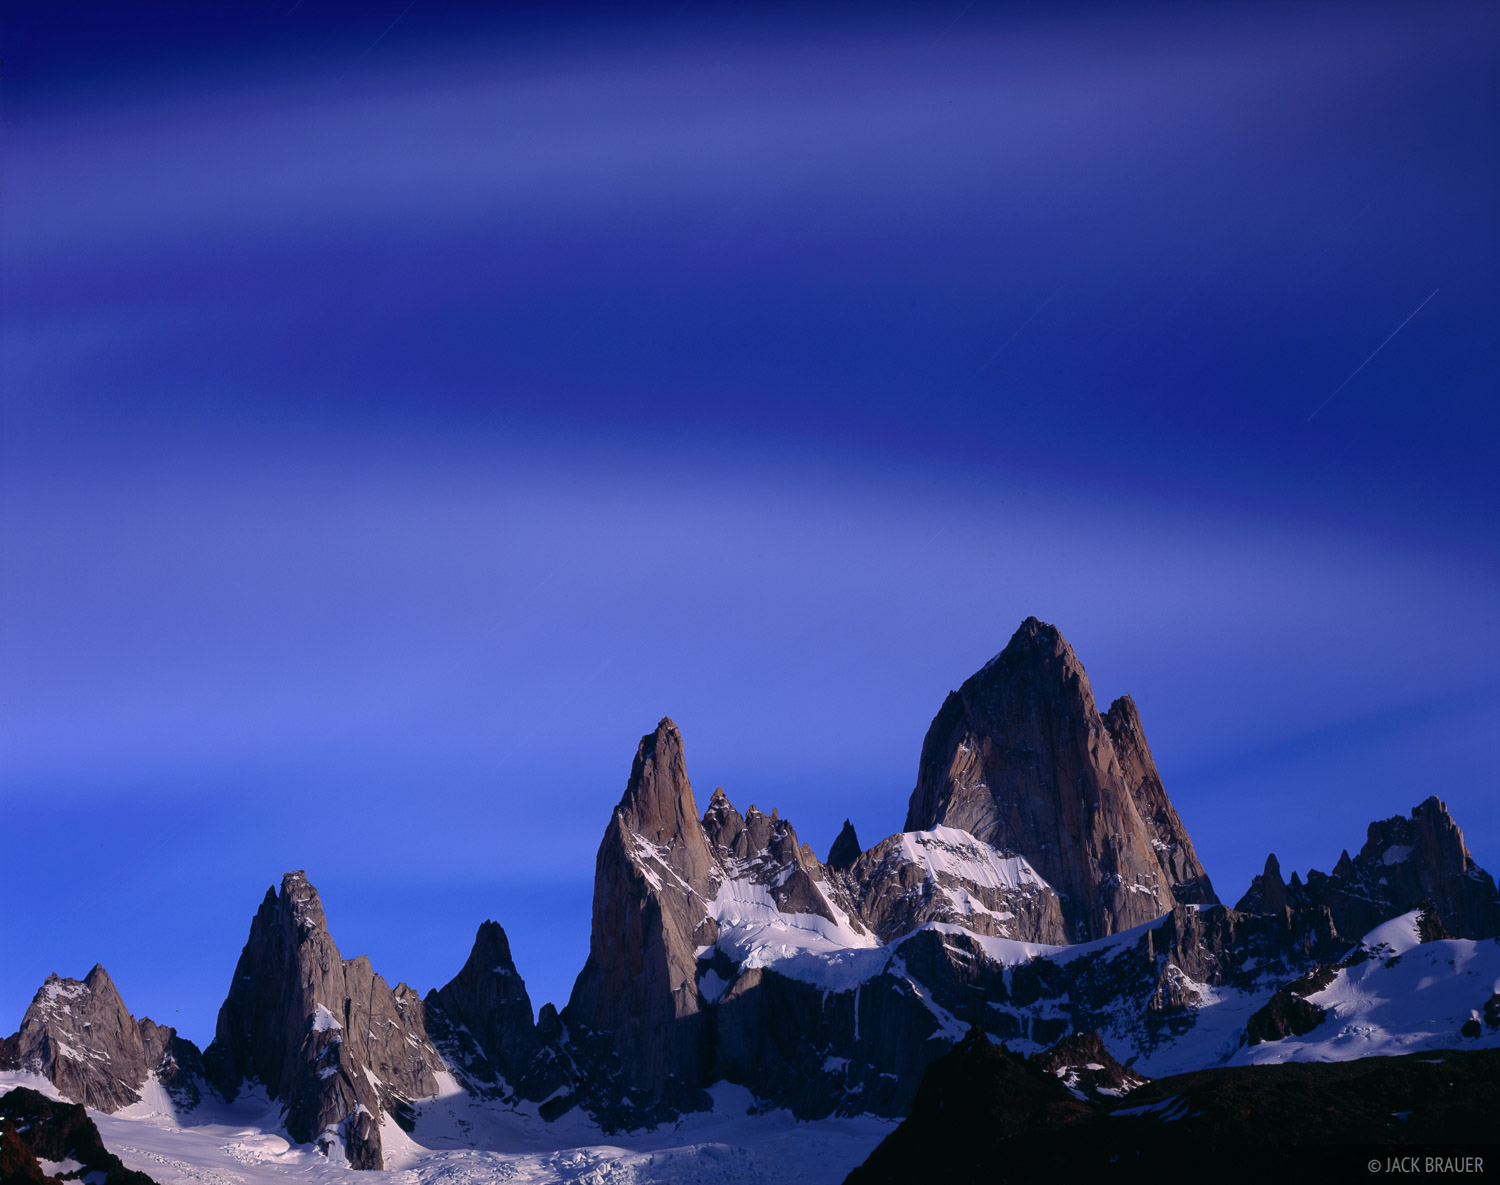 Cerro Poincenot, Monte Fitz Roy, Moonlight, Chaltén, photo